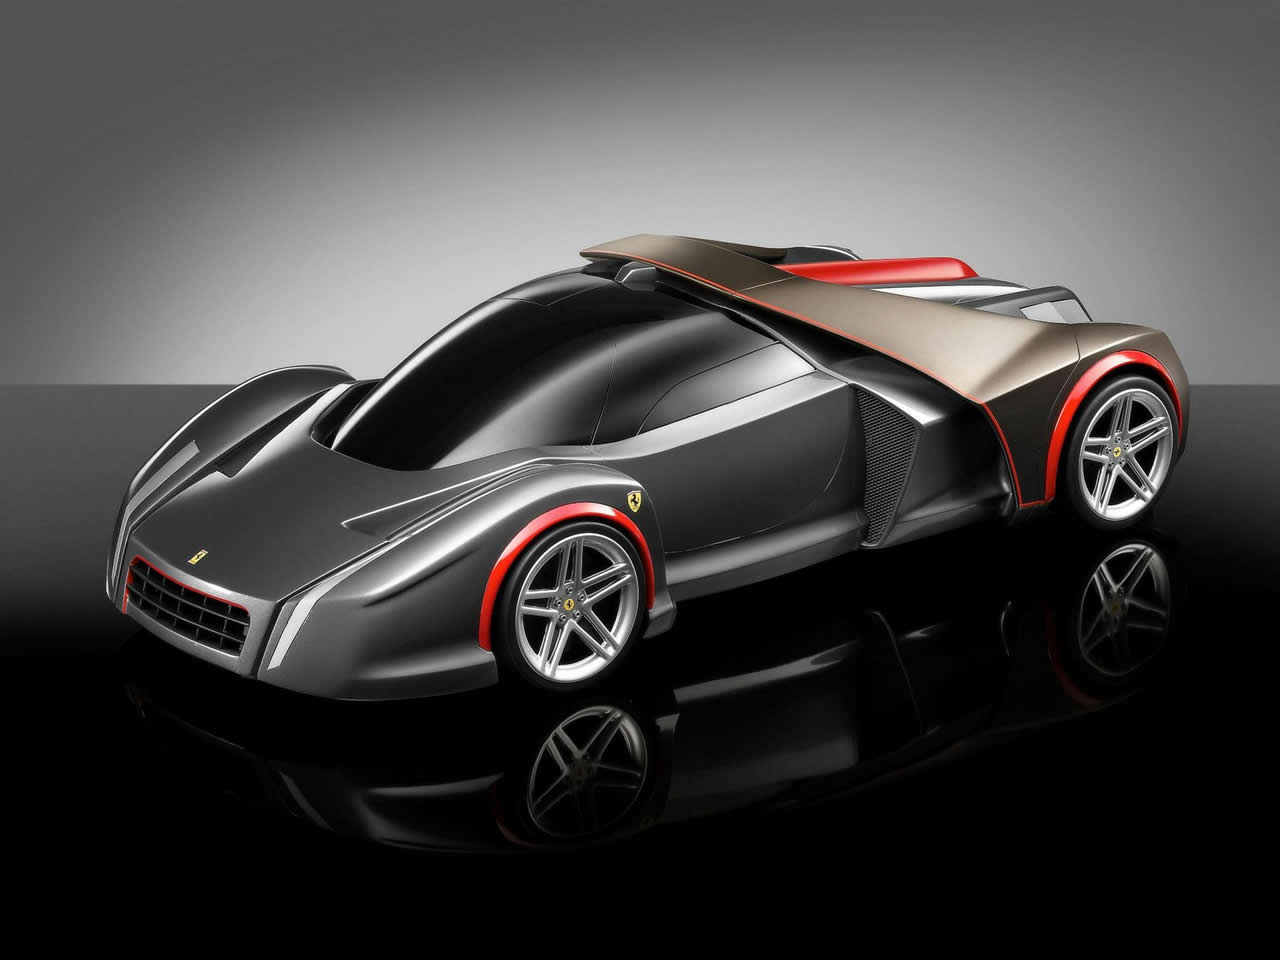 Imagenes wallpapers de autos 3d hd